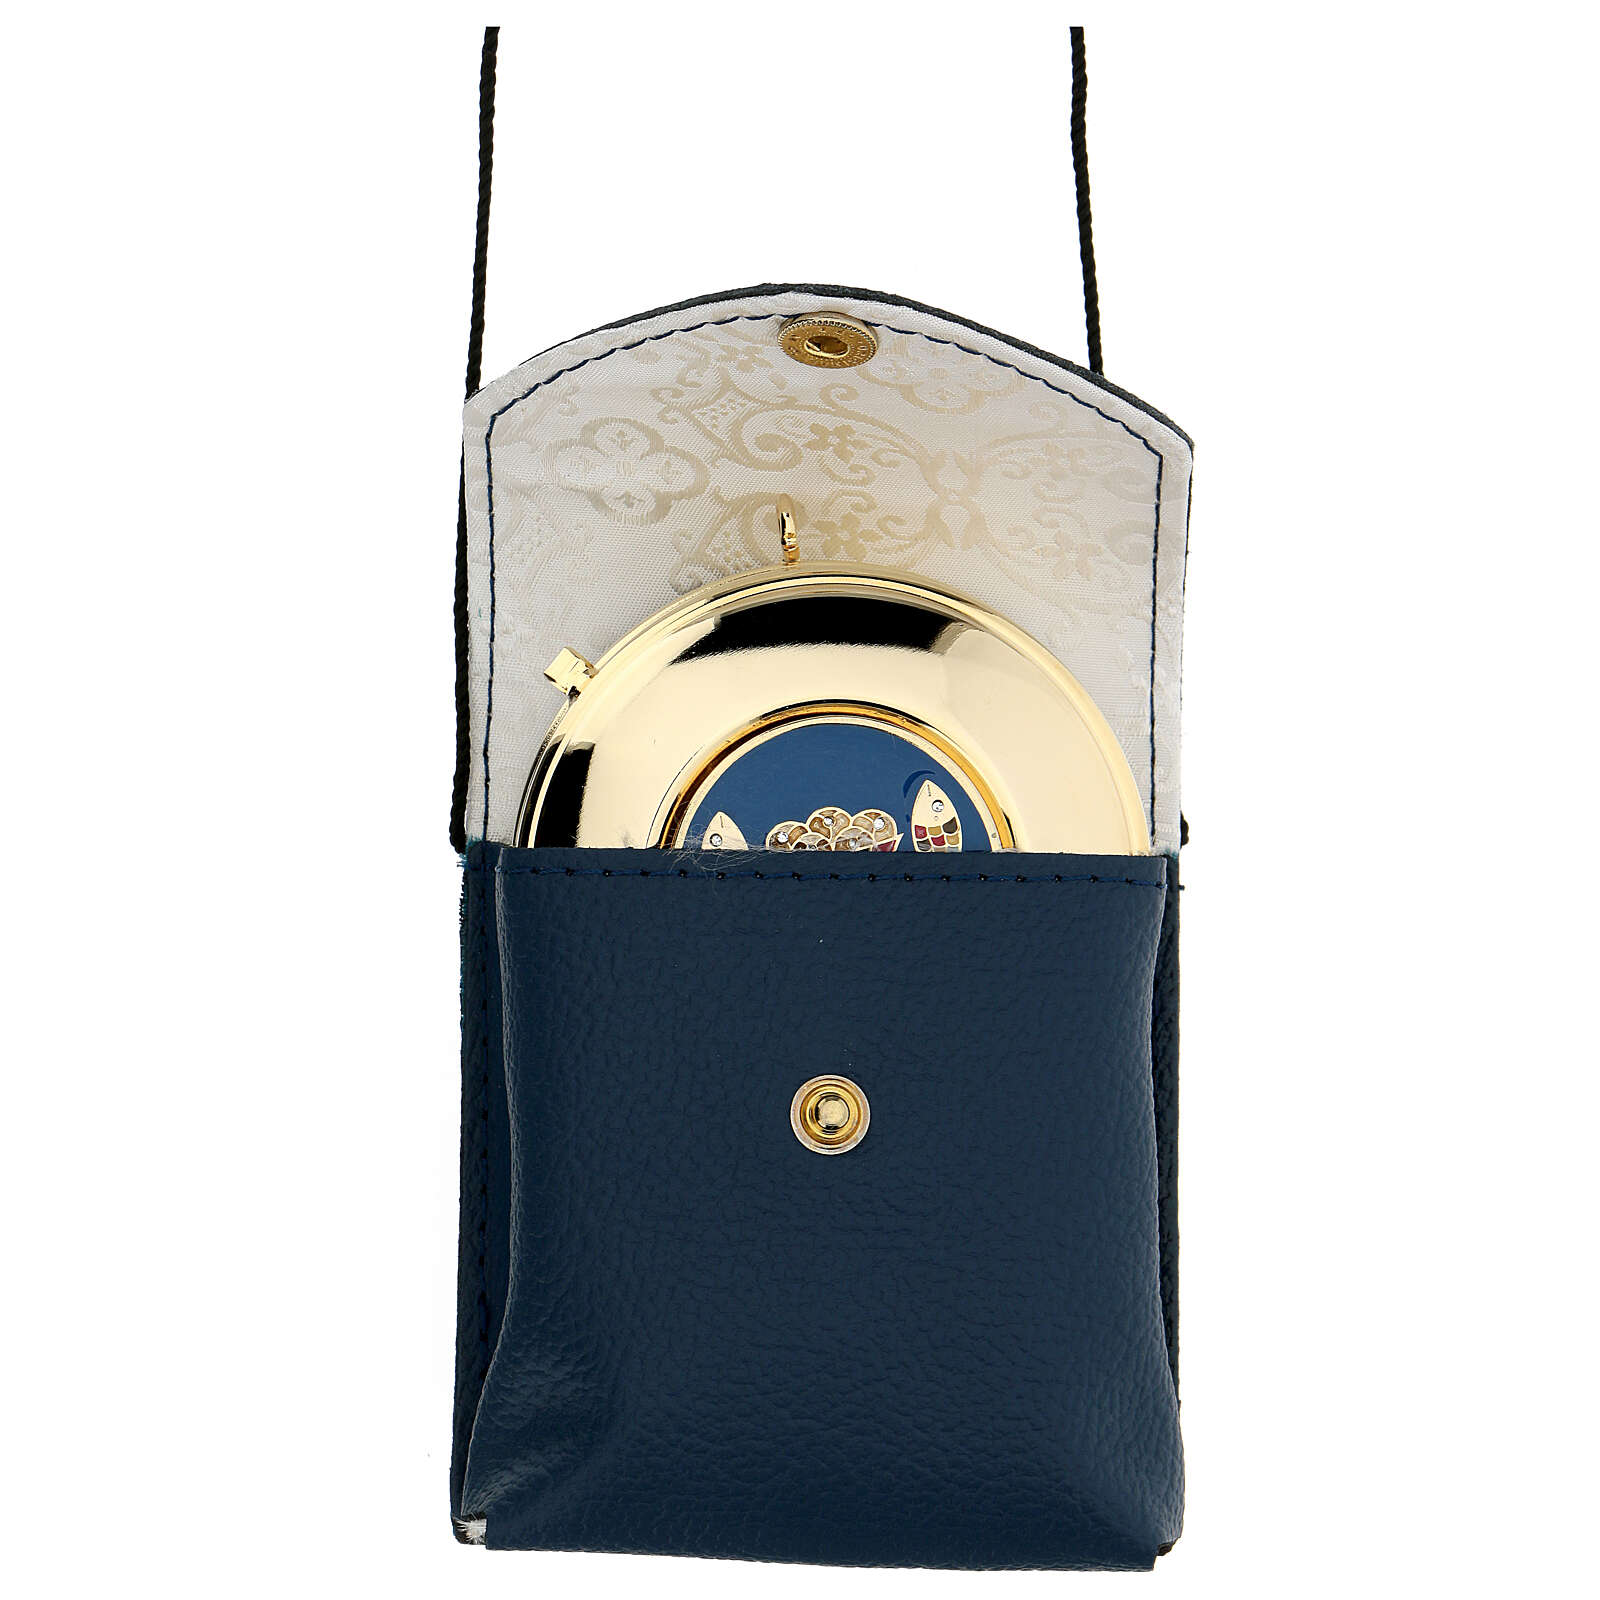 Blue leather burse with string and 3 in pyx 3